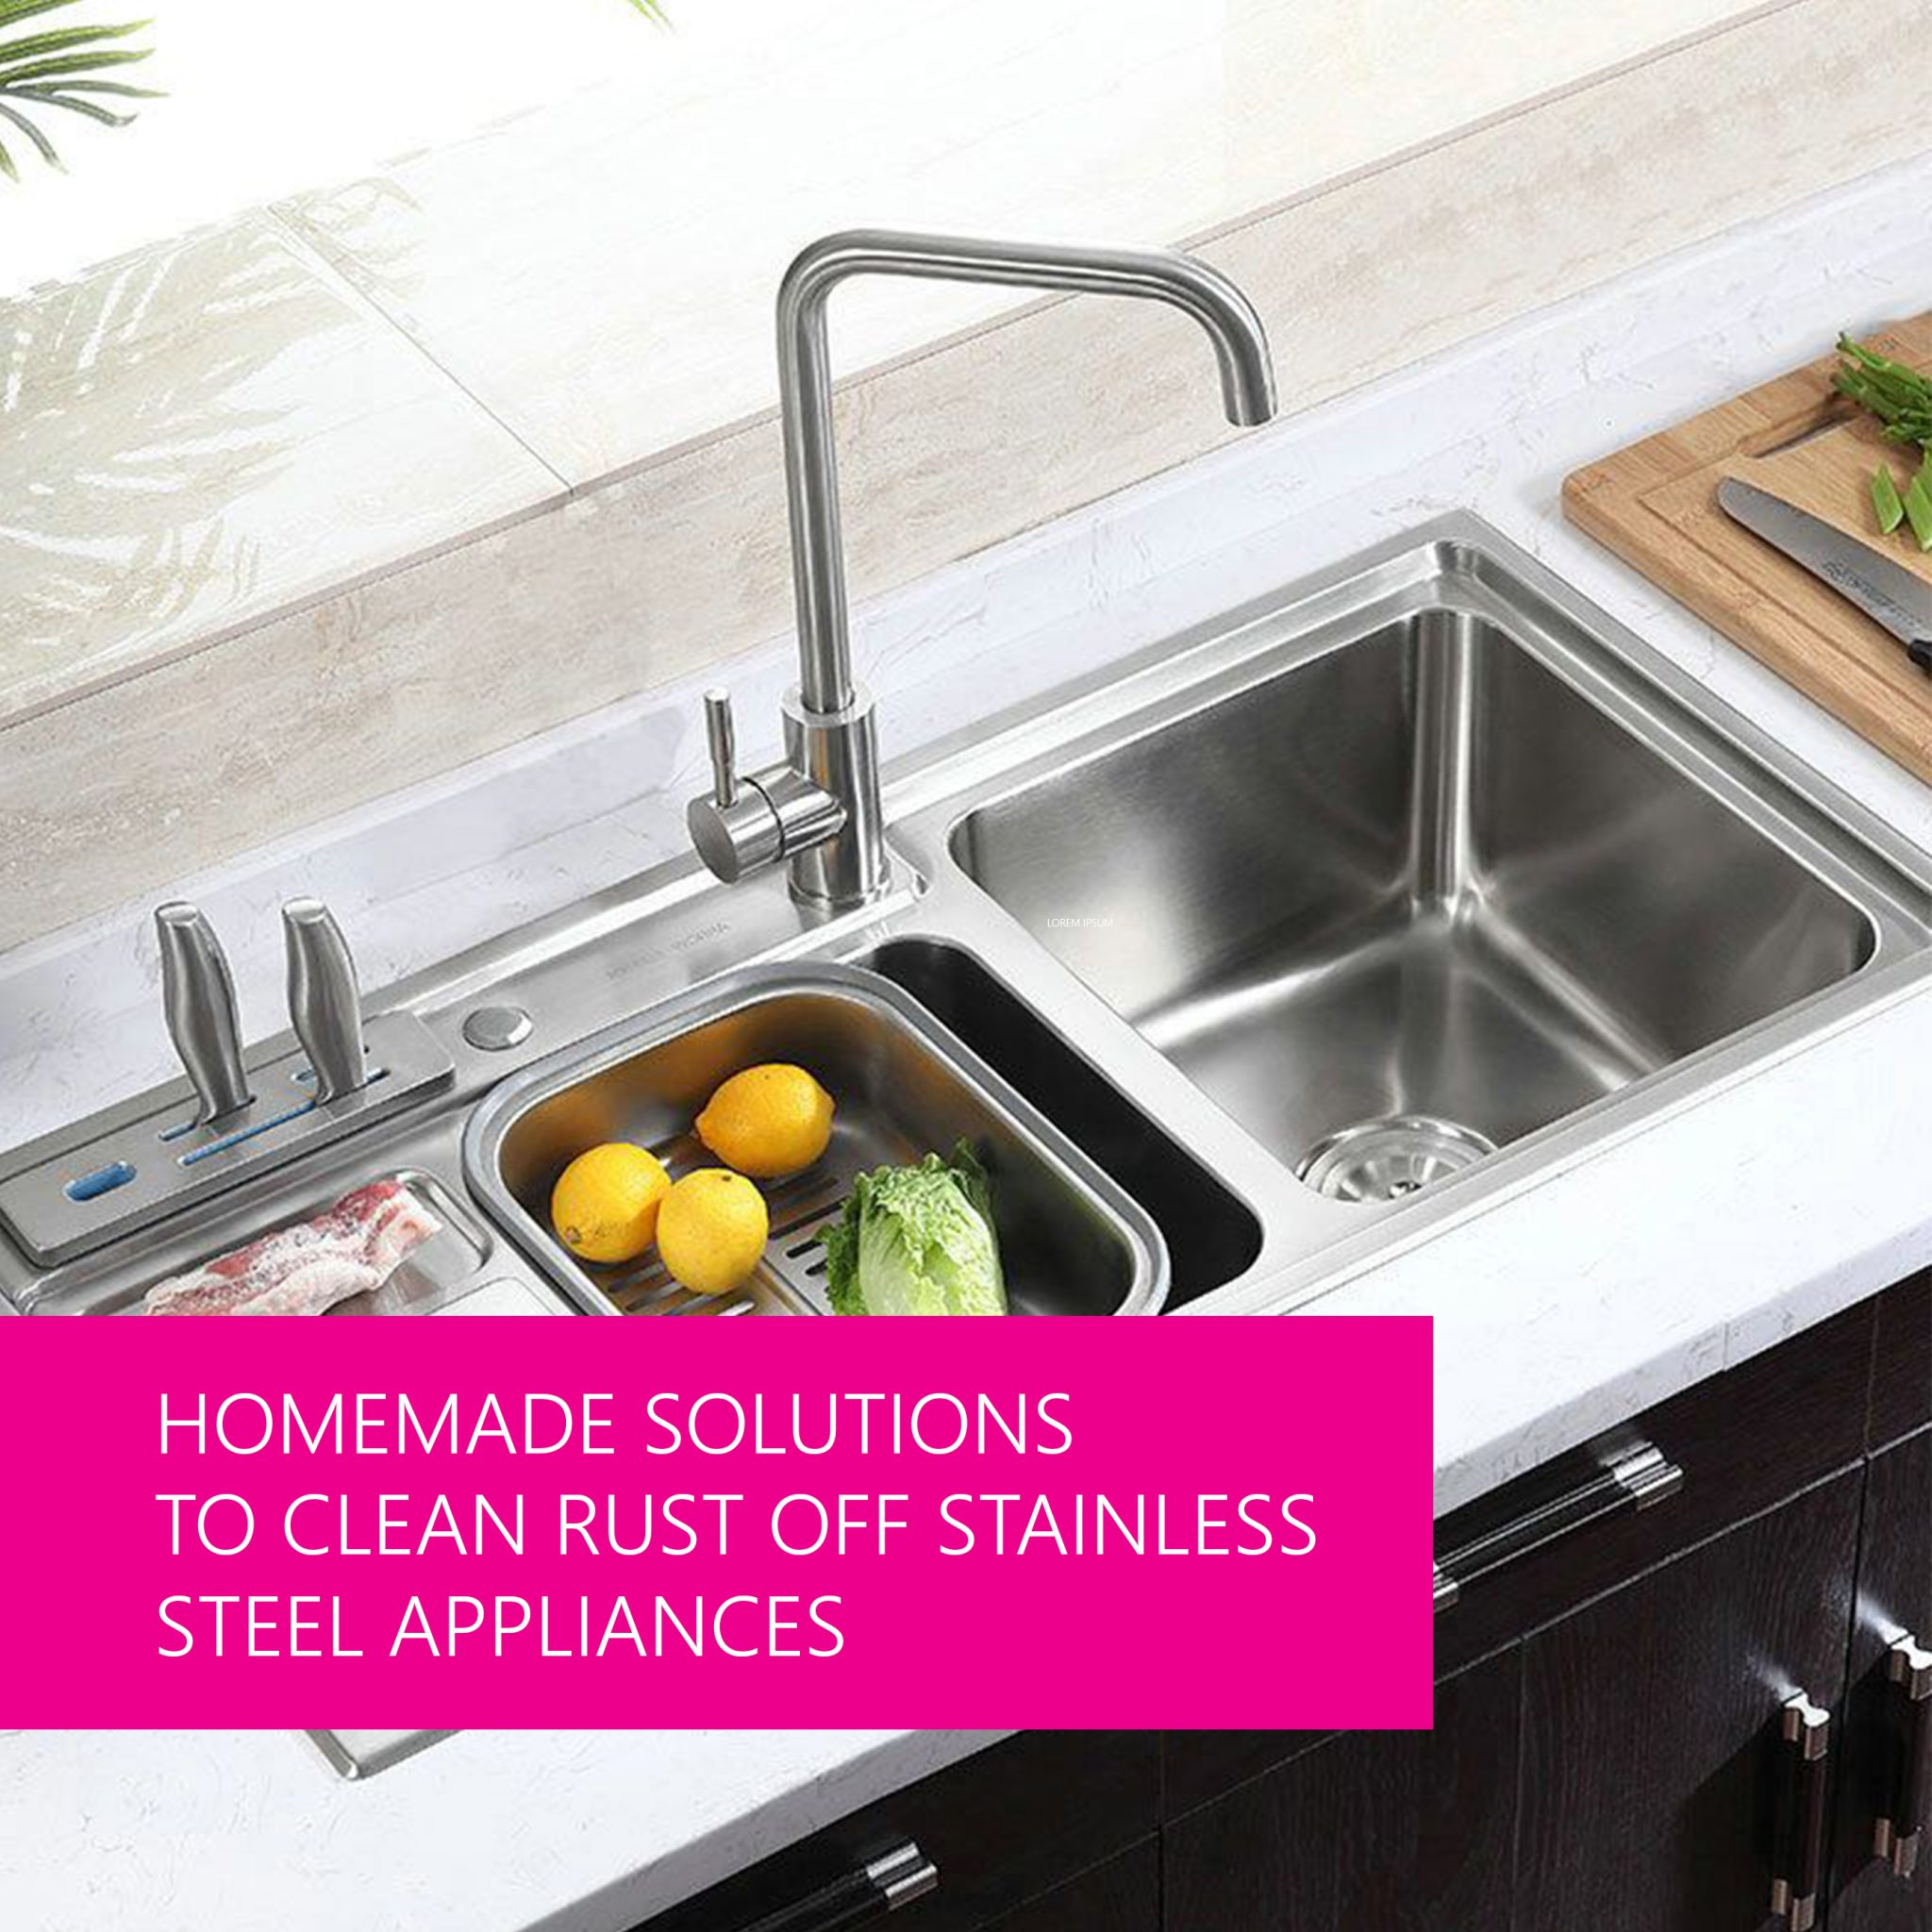 Homemade Solutions To Clean Rust Off Stainless Steel Appliances Life Maid Easy